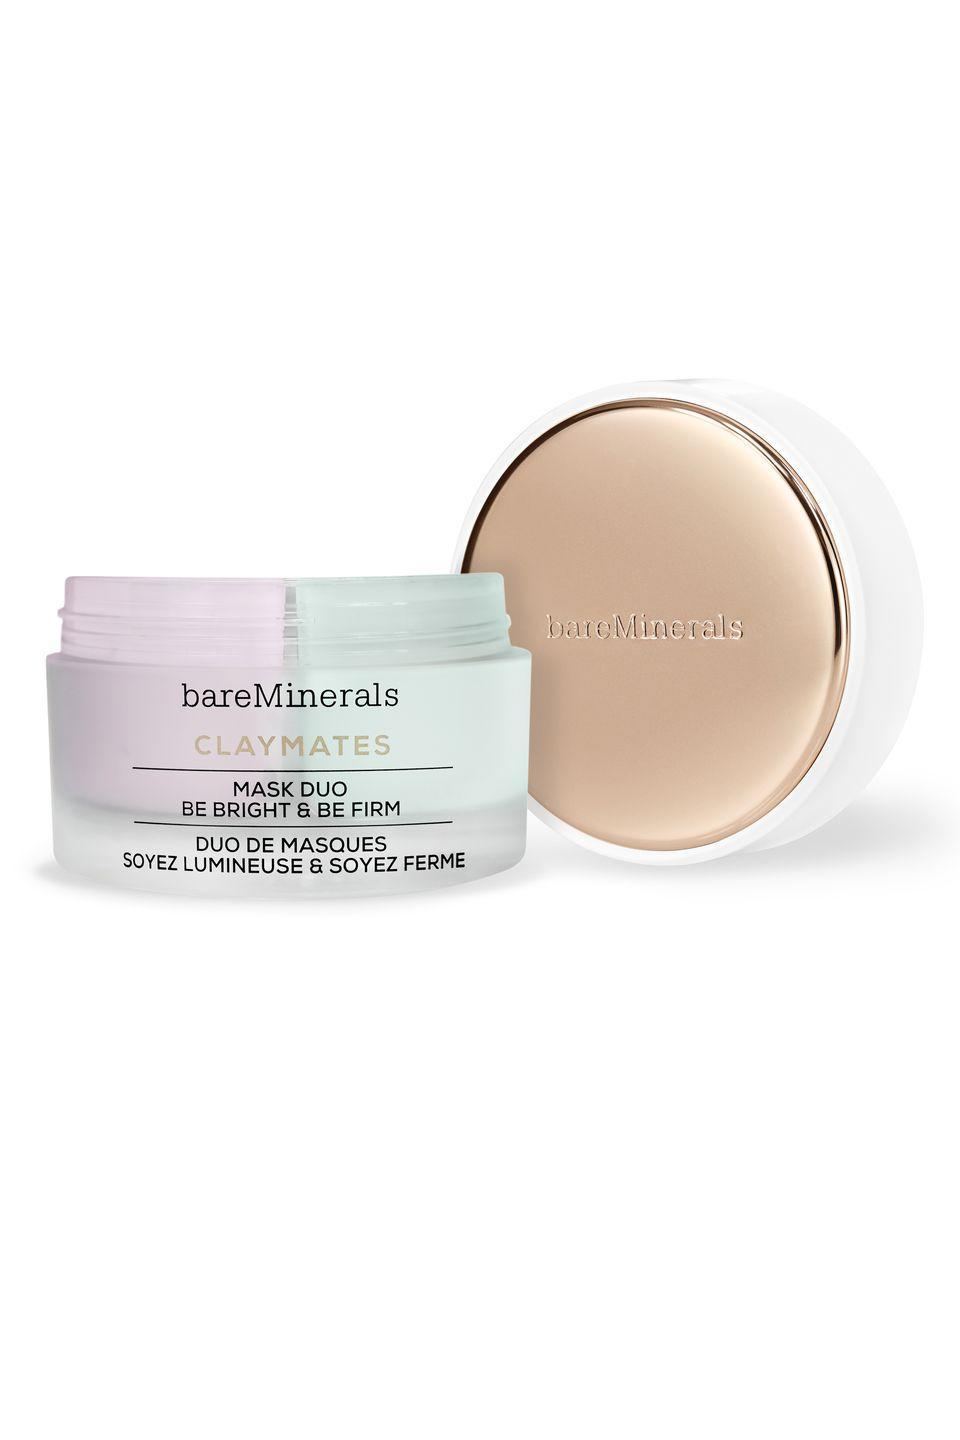 """<p>Use the Be Pure side of this mask on areas of the face that need a deep cleansing - then pop the Be Dewy side onto areas that are dry or red. You'll get targeted results <em>exactly </em>where you need them.</p><p>BareMinerals Claymates Be Pure and Be Dewey Mask Duo, $35, <a href=""""https://www.bareminerals.com/skincare/masks/claymates-be-pure-%26-be-dewy-mask-duo/US86007.html"""" rel=""""nofollow noopener"""" target=""""_blank"""" data-ylk=""""slk:bareminerals.com"""" class=""""link rapid-noclick-resp"""">bareminerals.com</a></p>"""